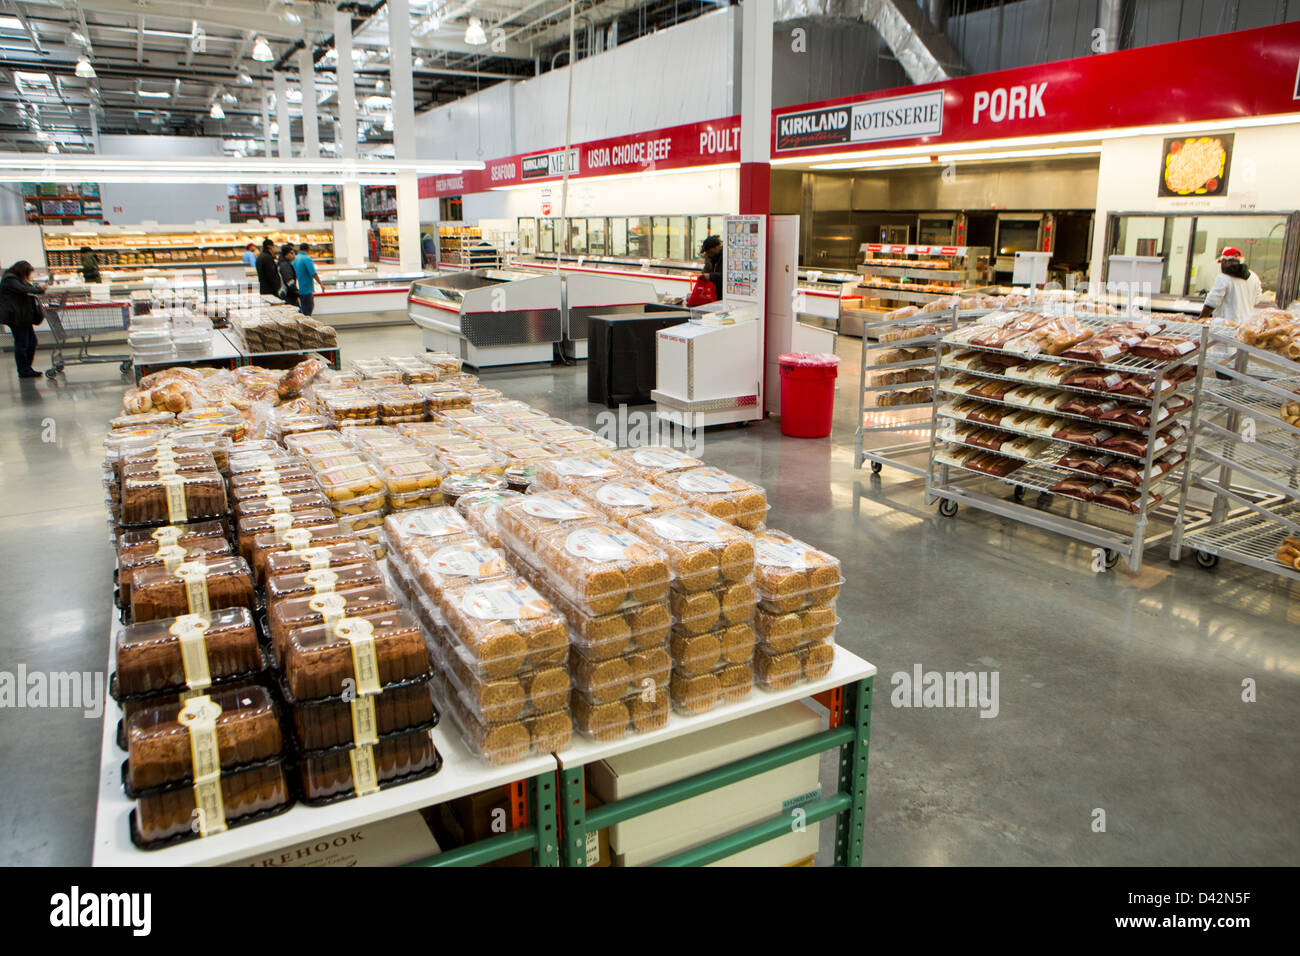 Costco bakery stock photos costco bakery stock images alamy customers shopping in the bakery section of a costco wholesale warehouse club stock image altavistaventures Images